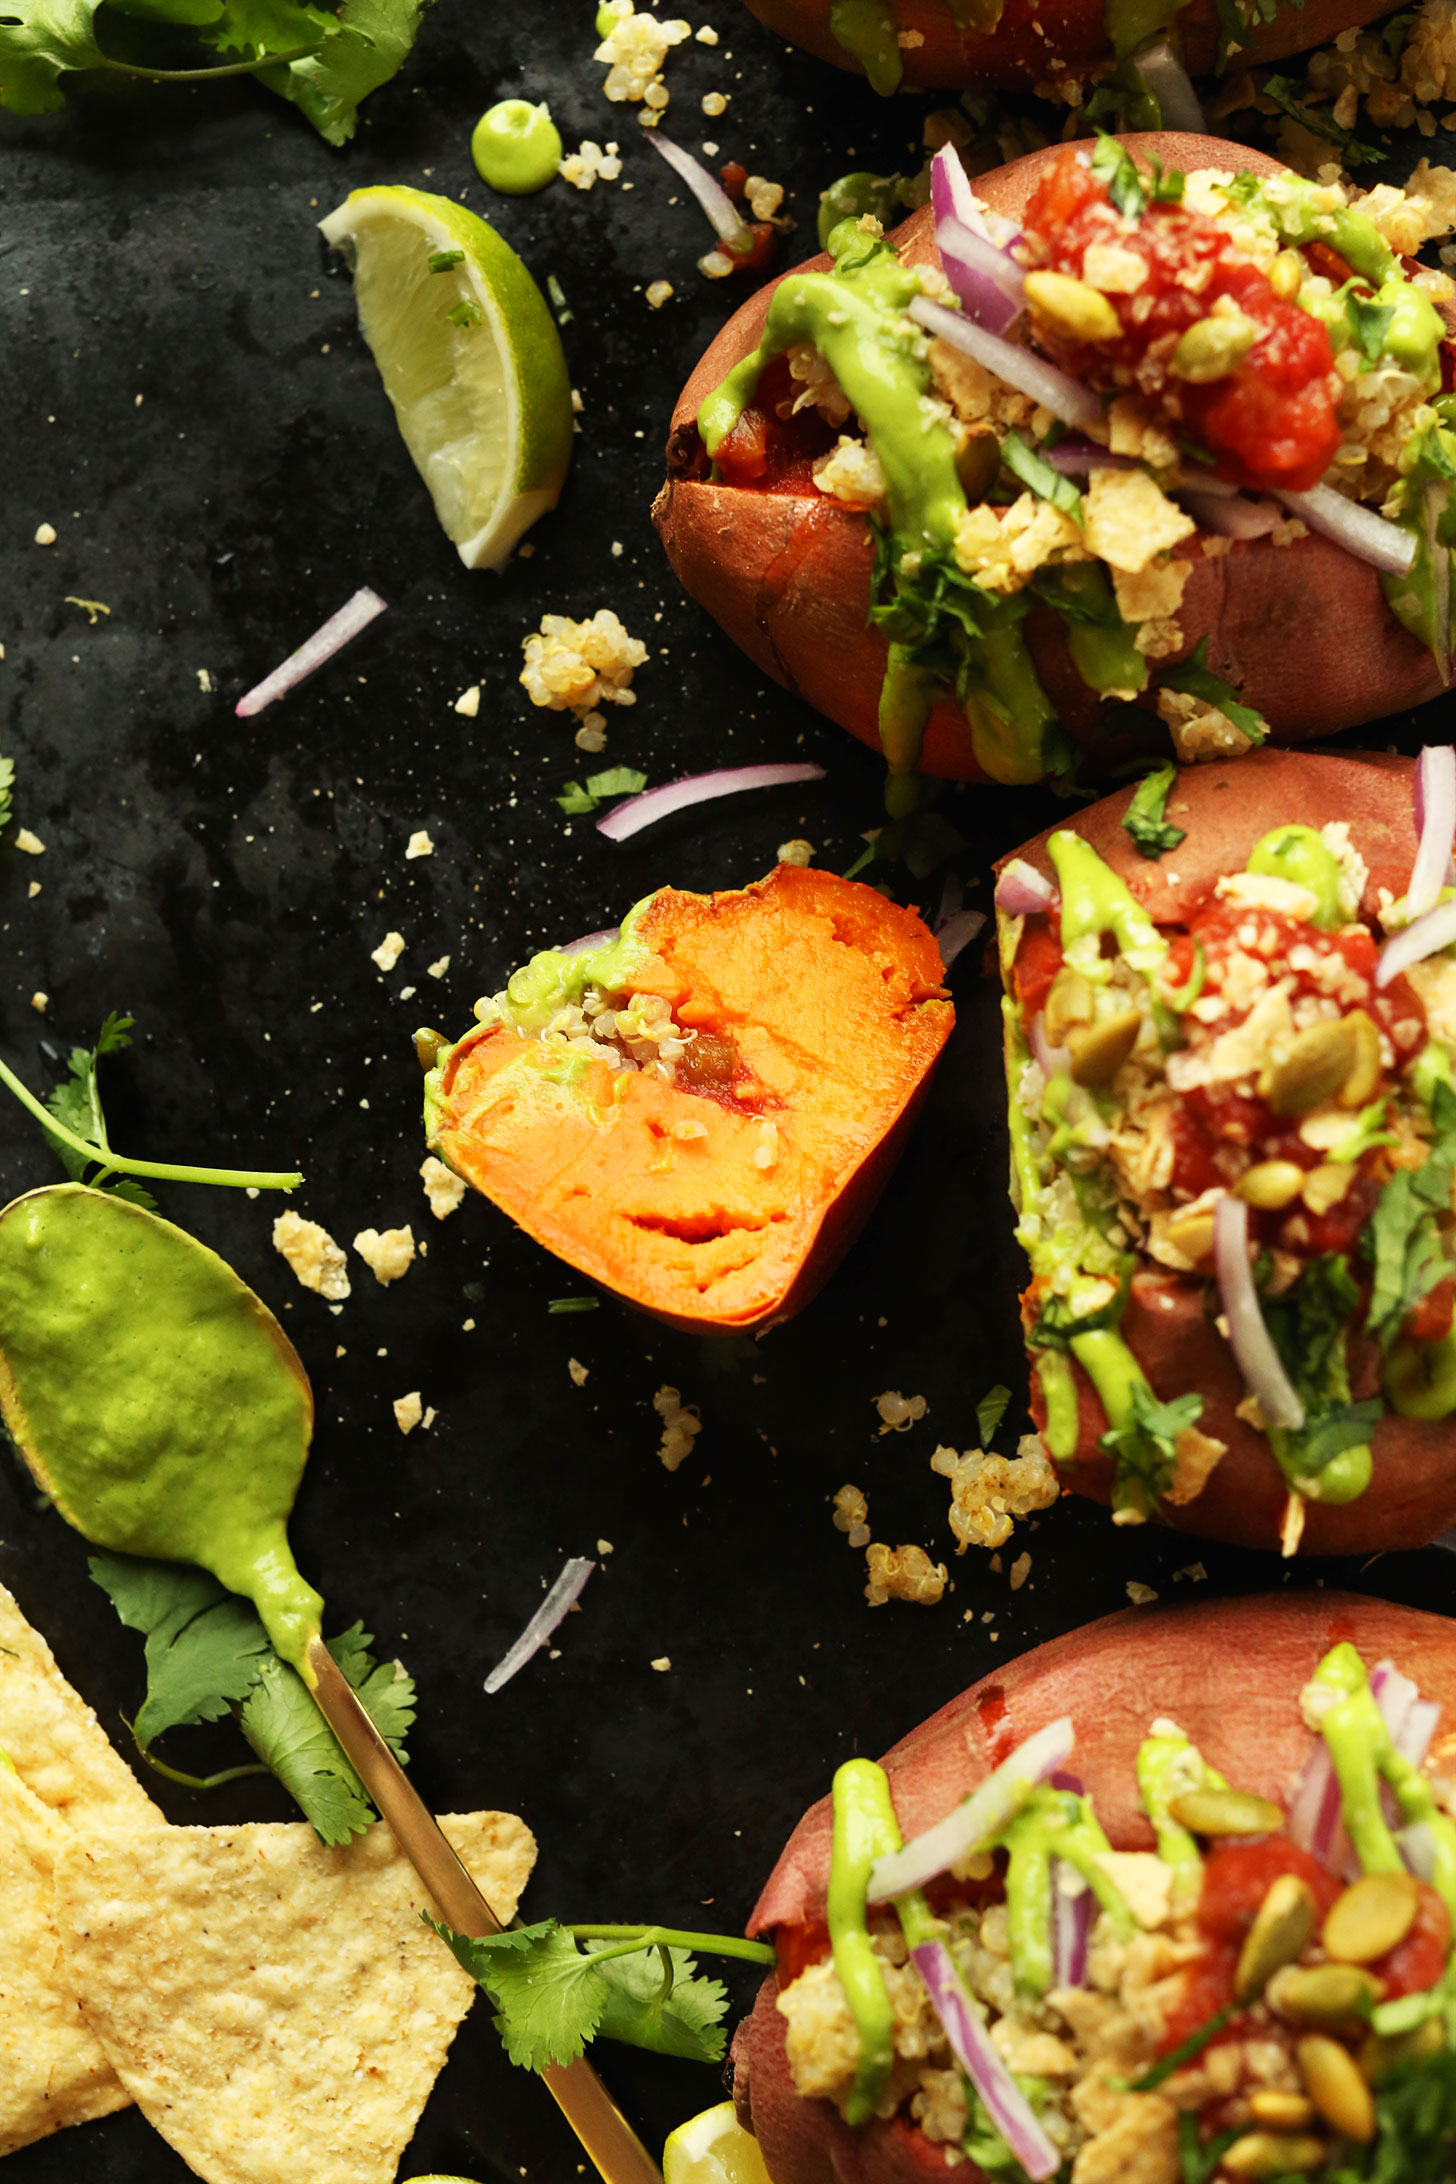 Quinoa Stuffed Sweet Potatoes on a tray ready to be devoured for a healthy plant-based meal